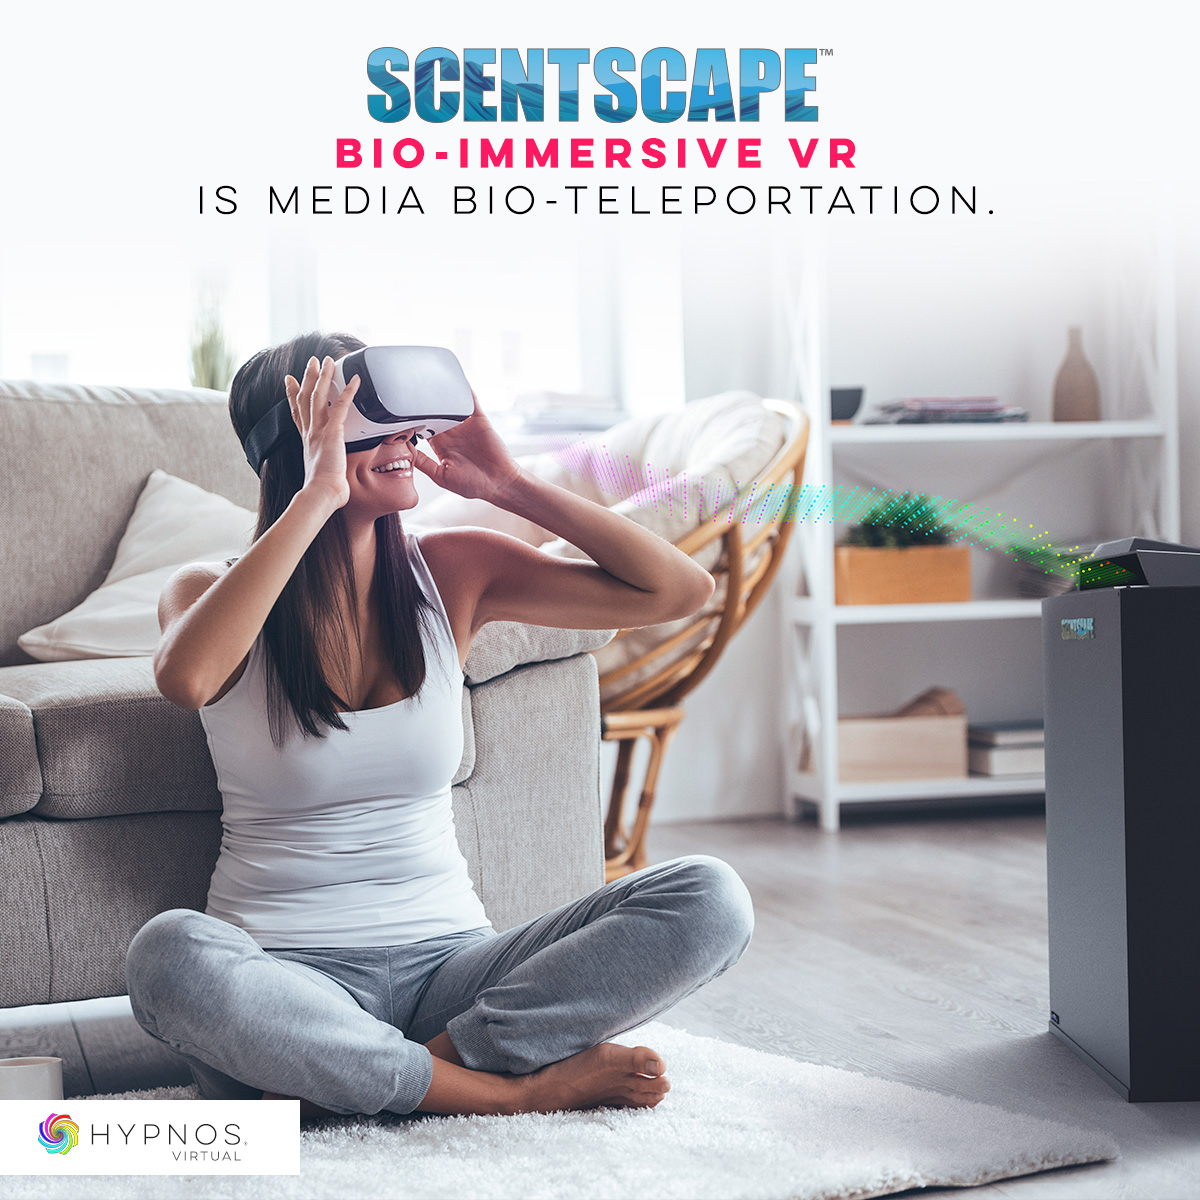 Scentscape Patented NeuroScience VR Bio-Teleportation Technology lets you feel like you are